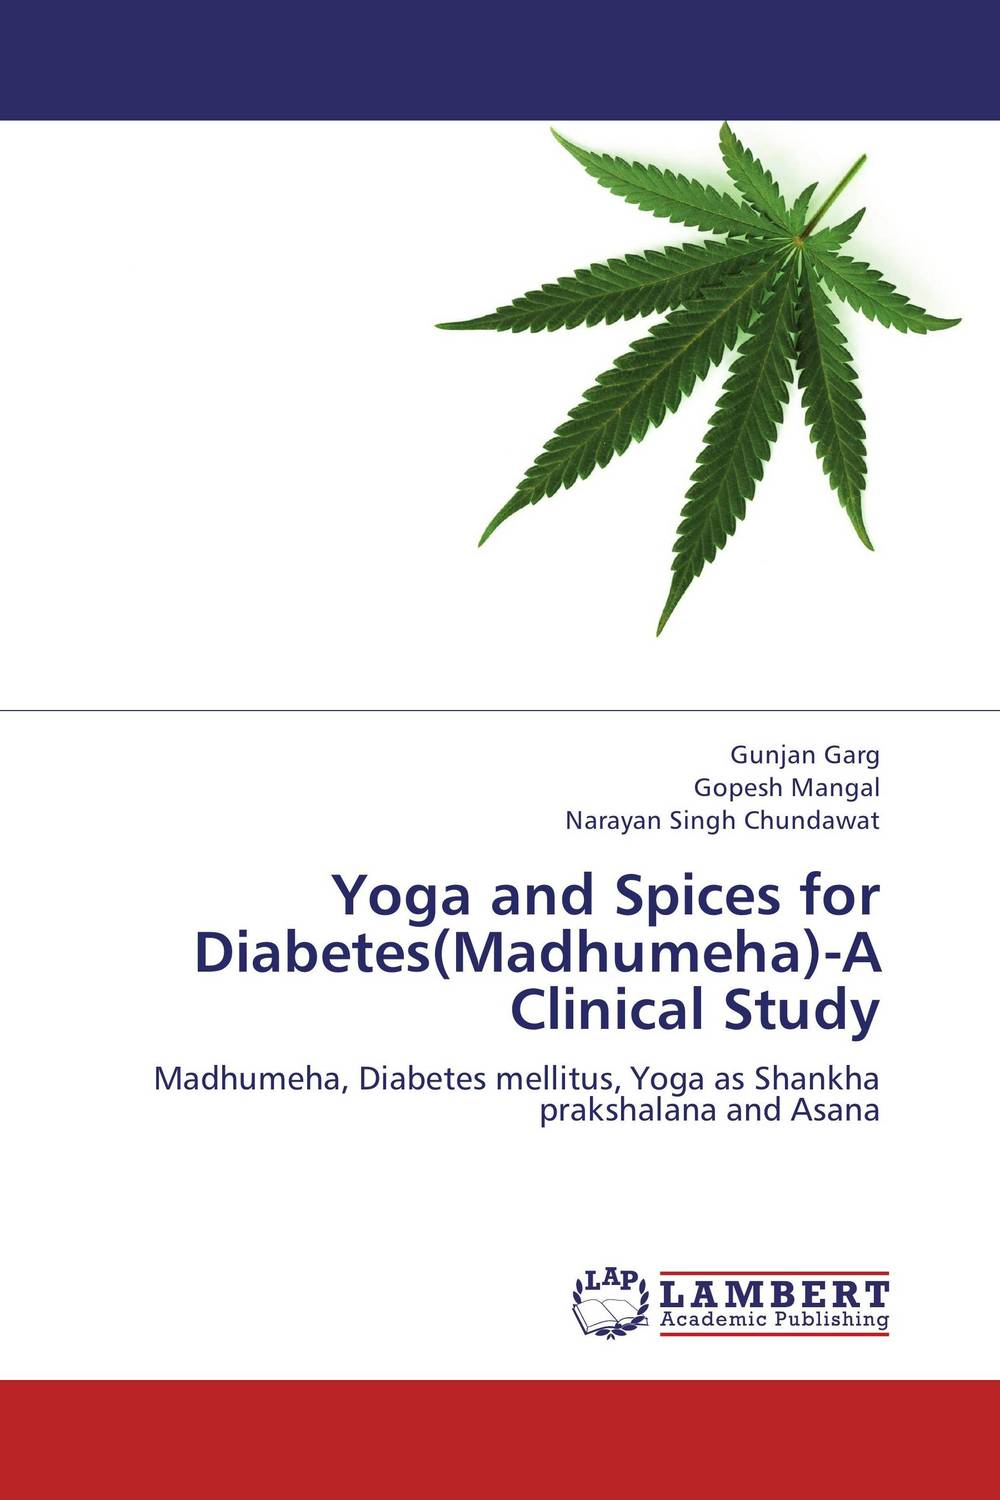 все цены на  Yoga and Spices for Diabetes(Madhumeha)-A Clinical Study  в интернете